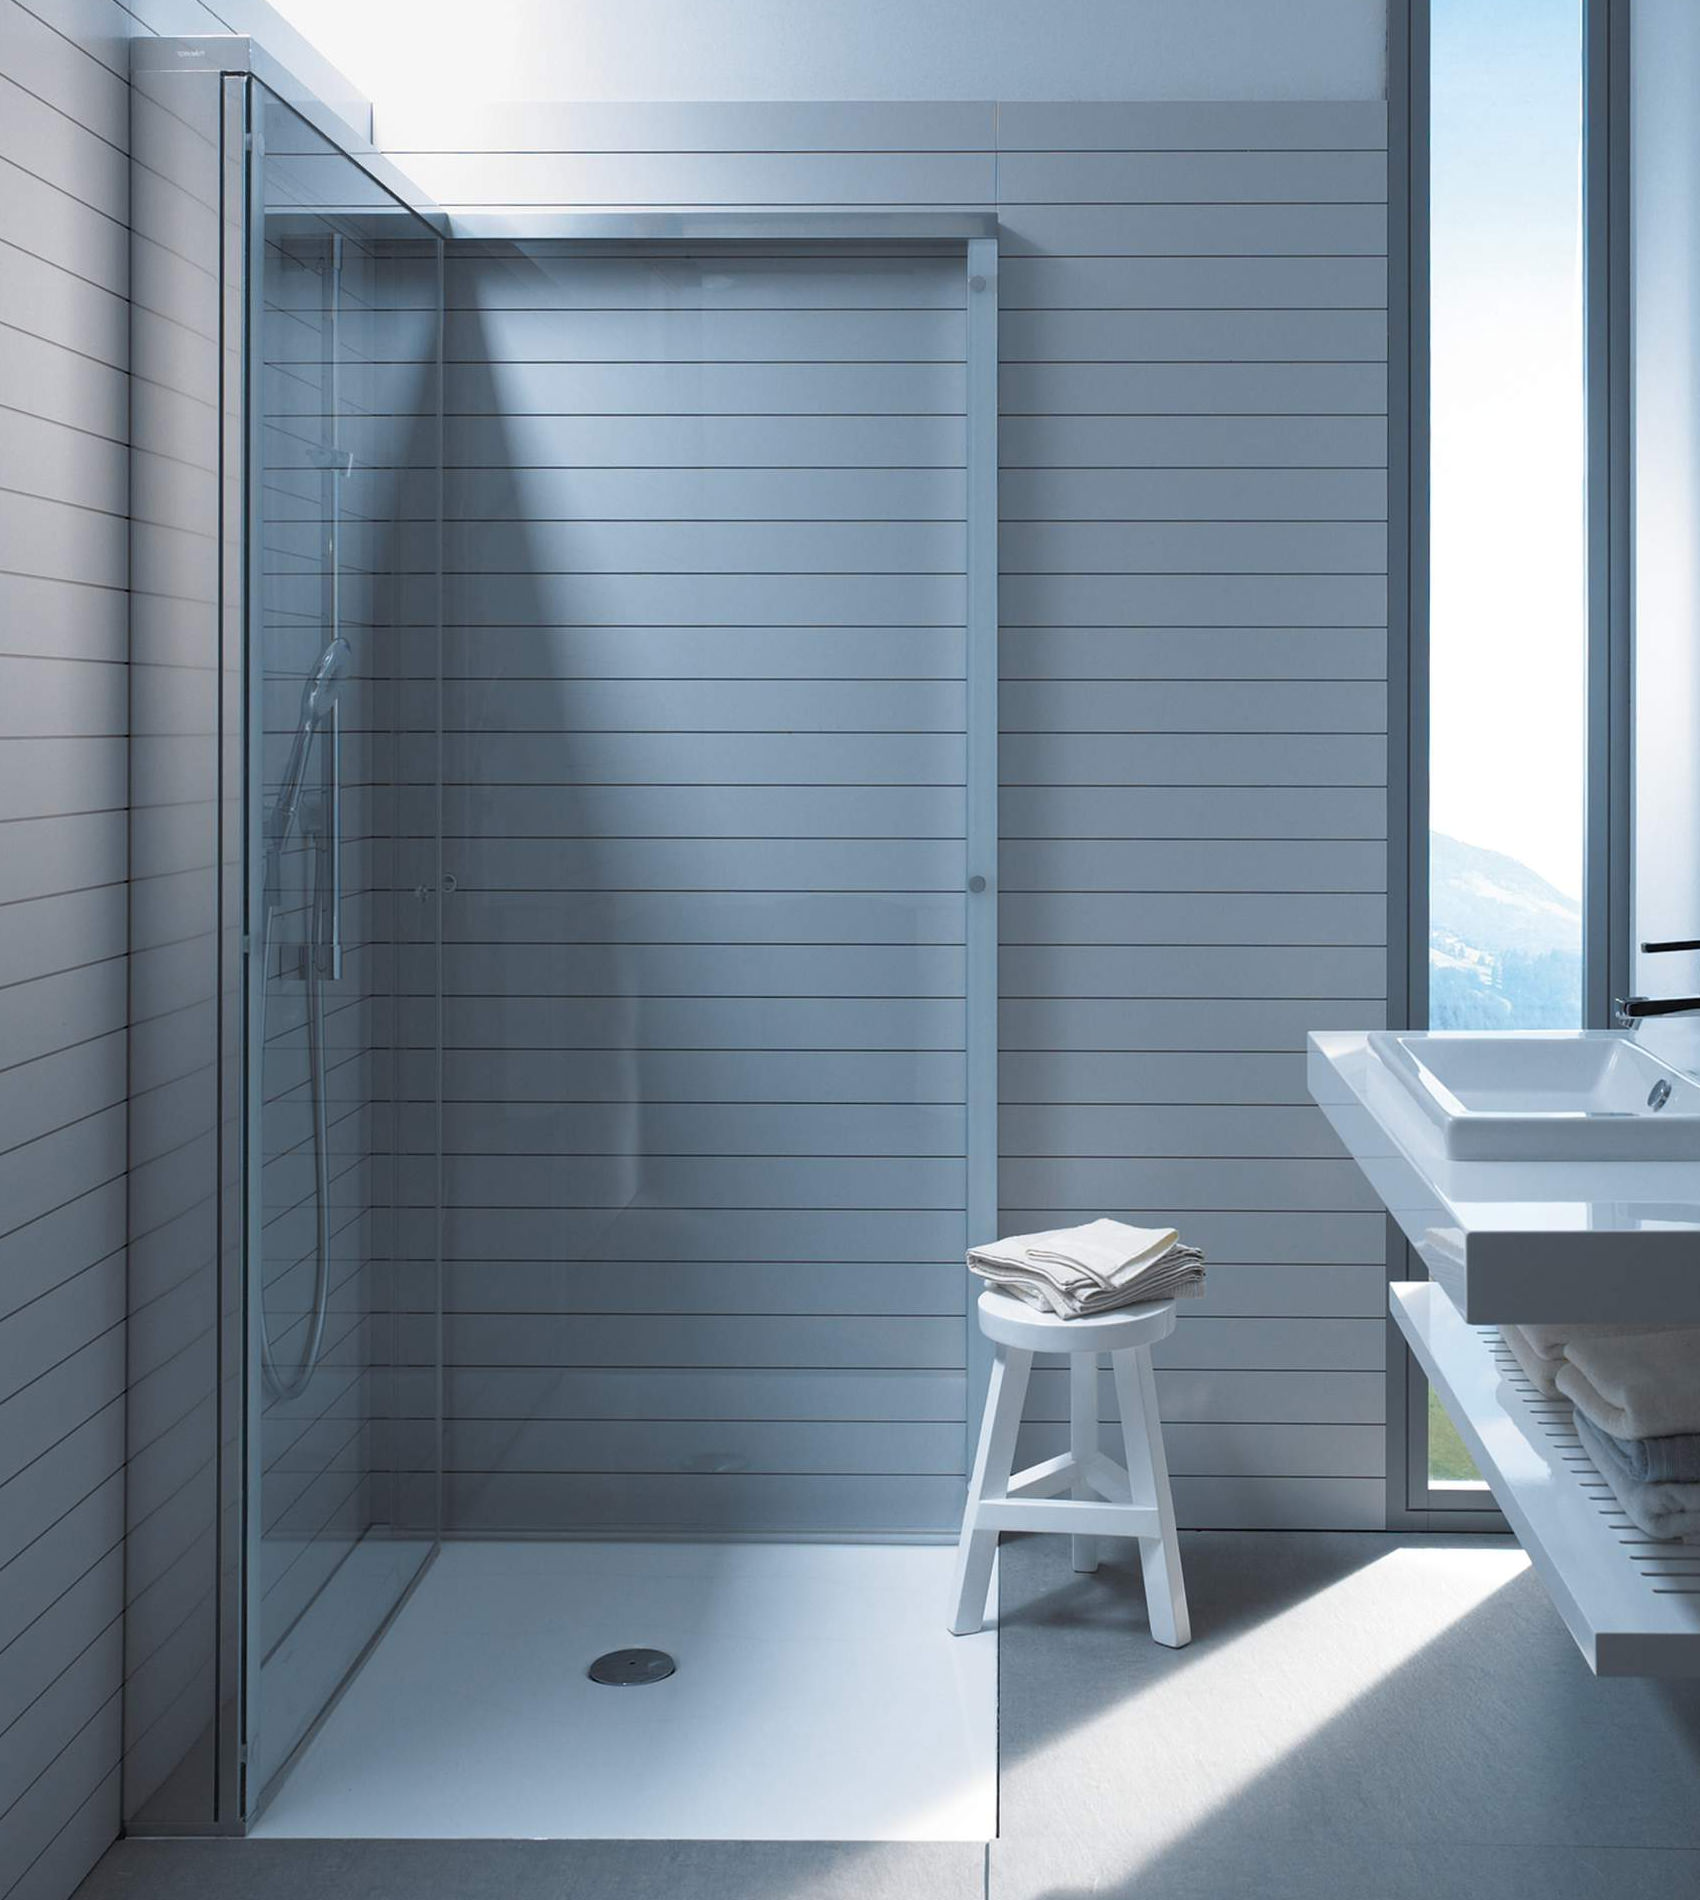 Duravit OpenSpace 785 x 785mm Square Shower Screen For Tap On Left ...